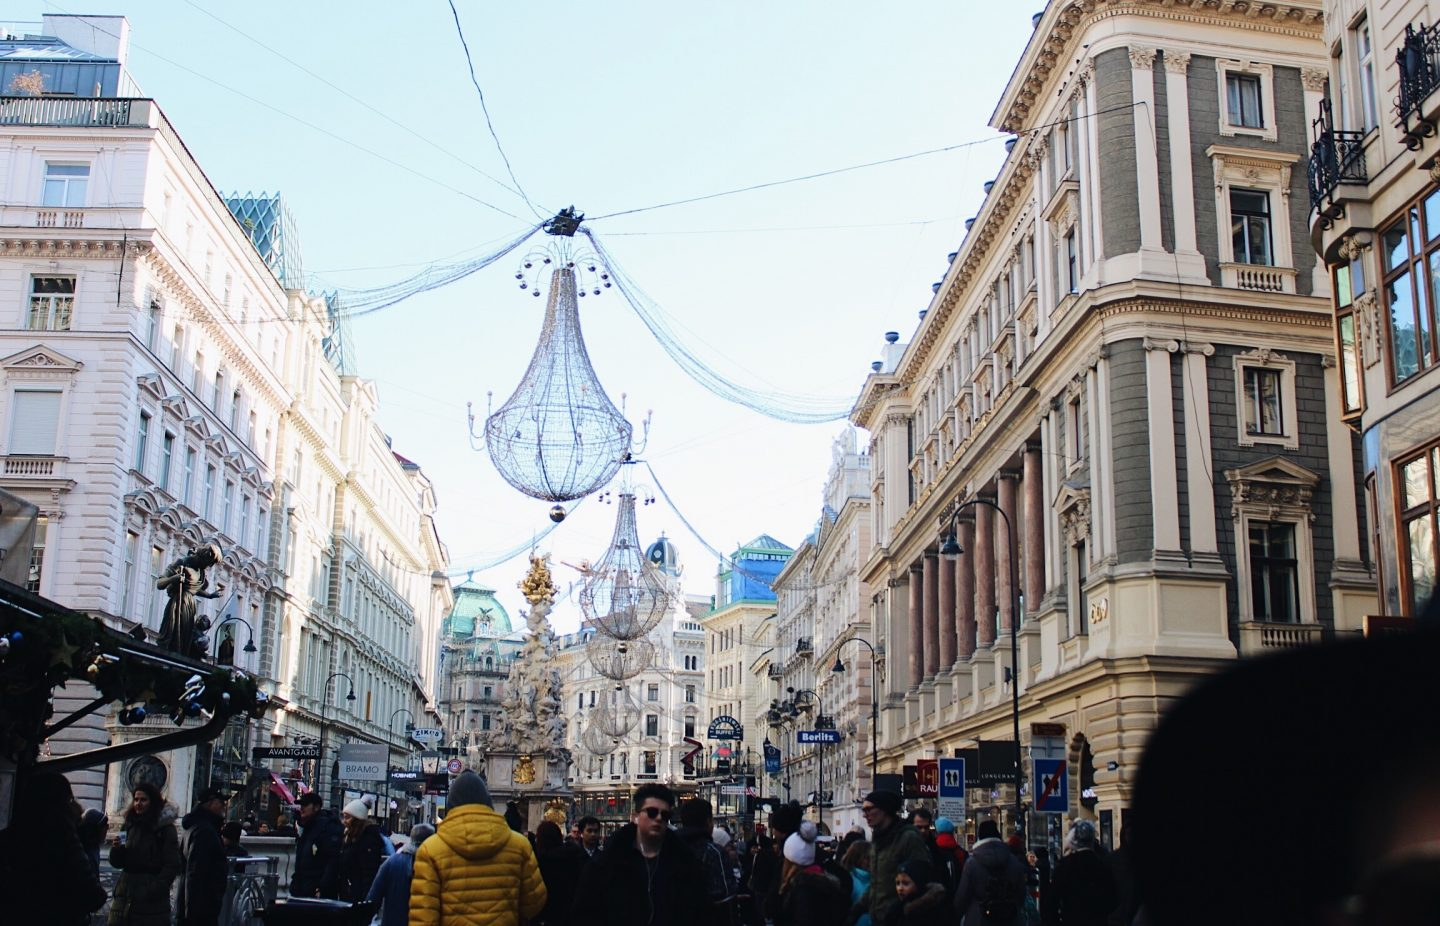 The main street in Vienna, Austria all decorated for Christmas!